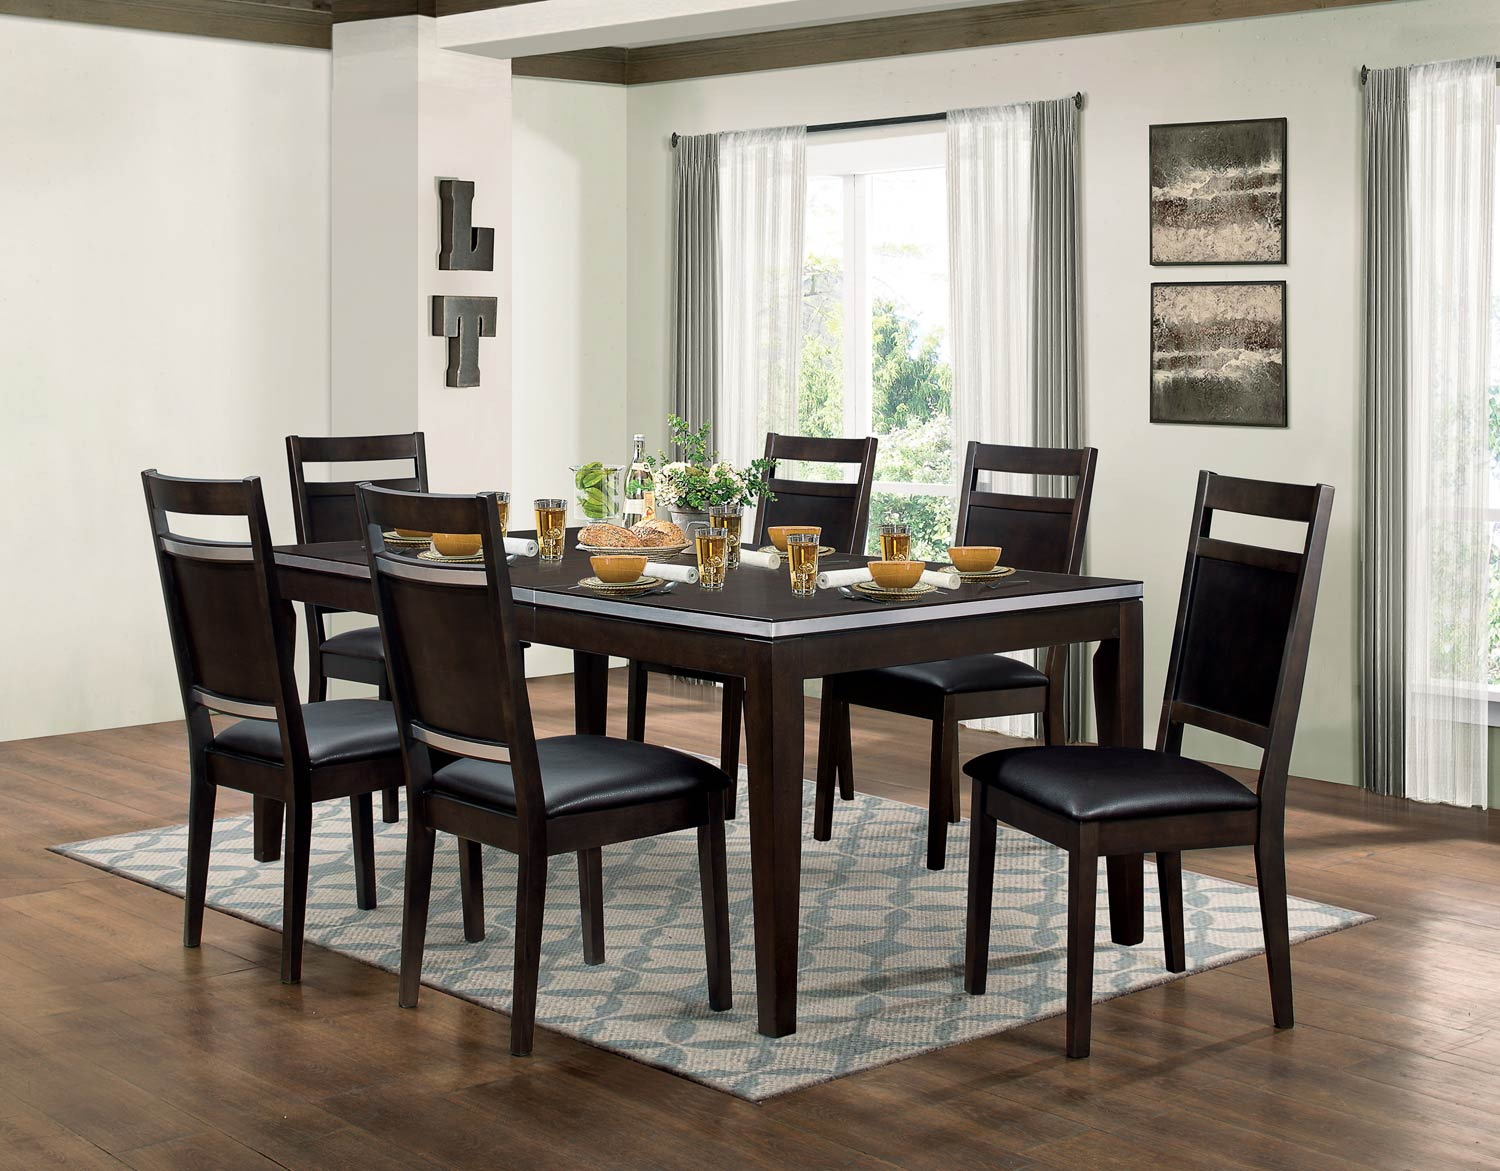 Homelegance Pasco Dining Set - Espresso